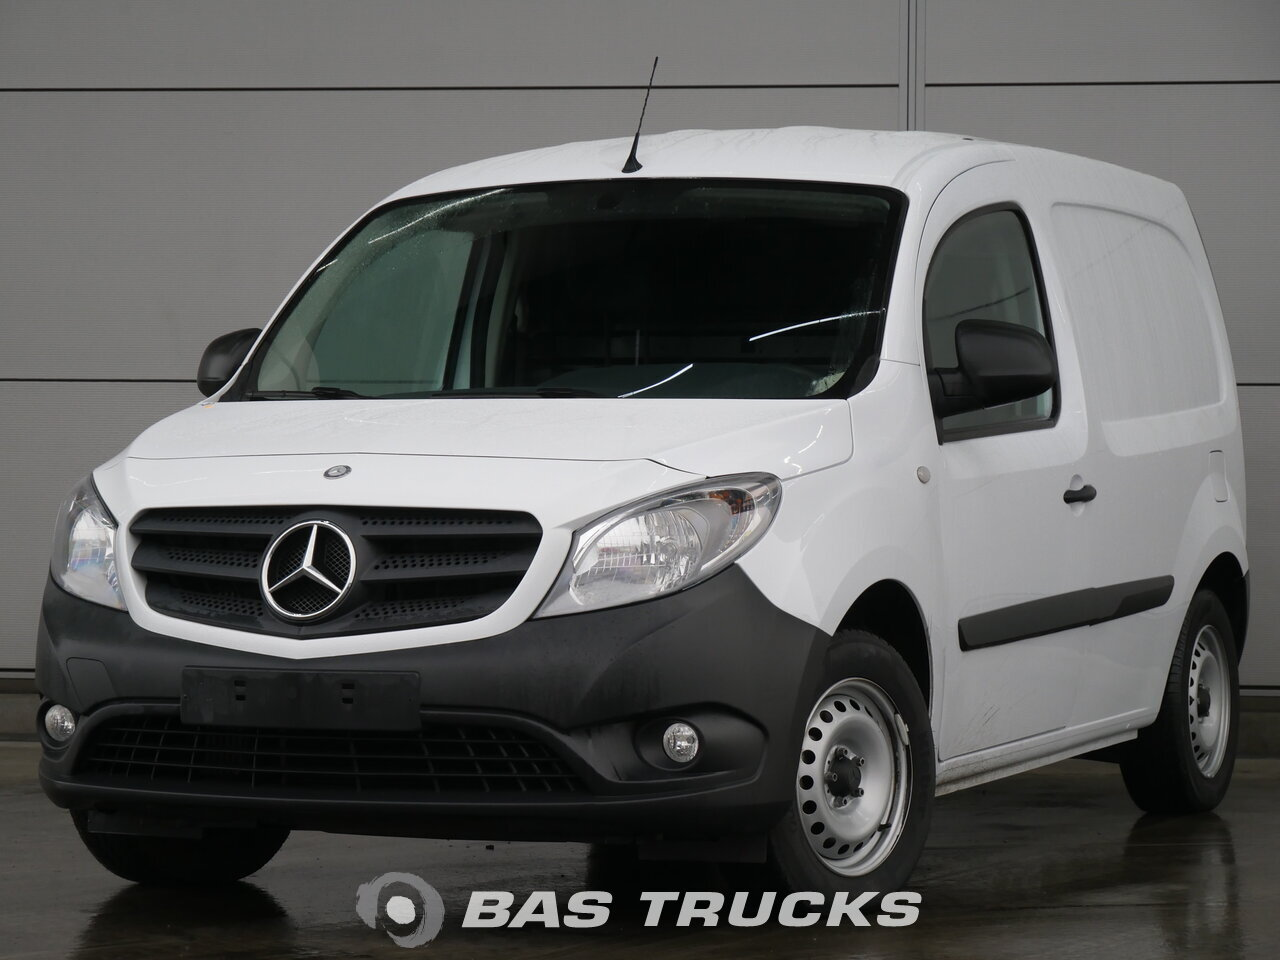 mercedes citan lcv euro 0 8400 bas trucks. Black Bedroom Furniture Sets. Home Design Ideas